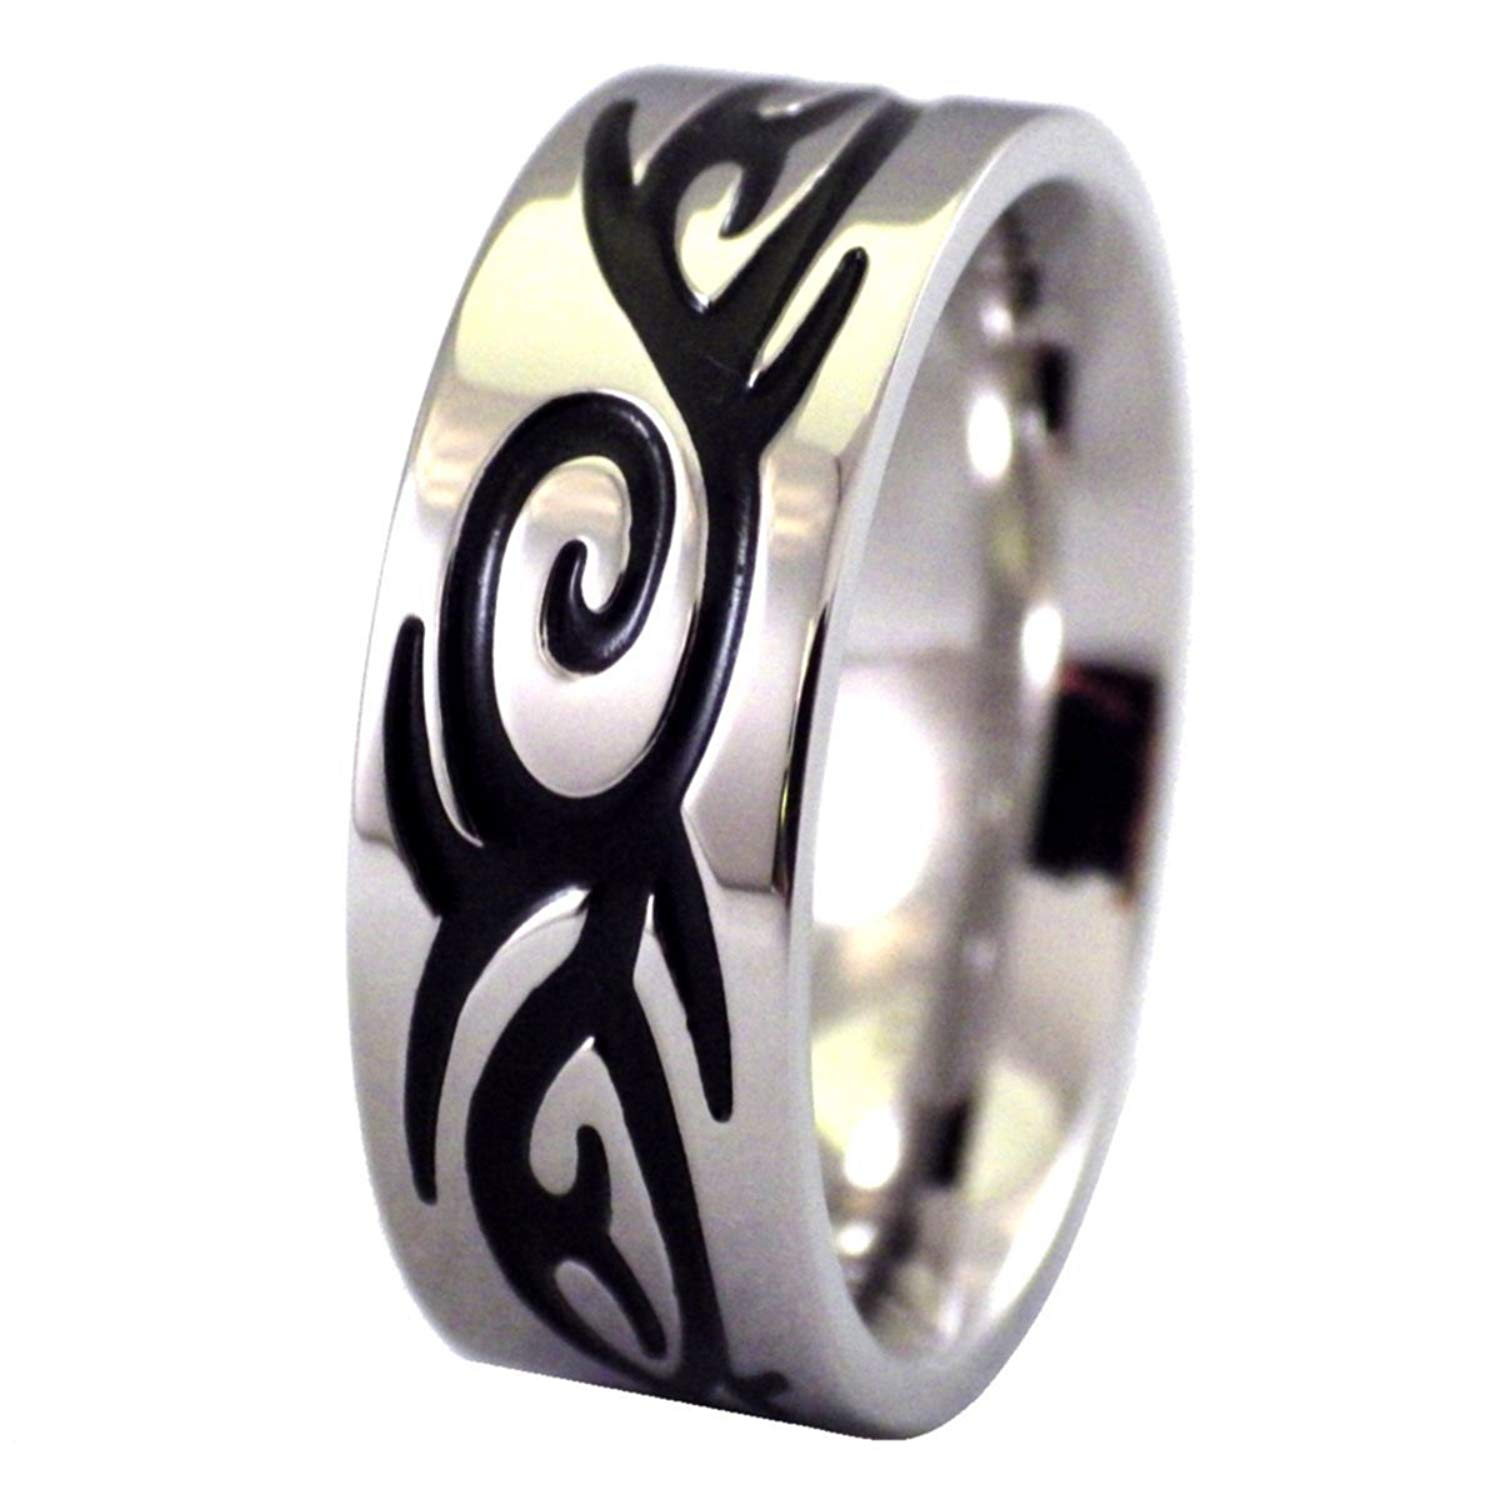 Fantasy Forge Jewelry Mens Engraved Tribal 316L Stainless Steel Ring 8mm Wide Band Size 9.5-13